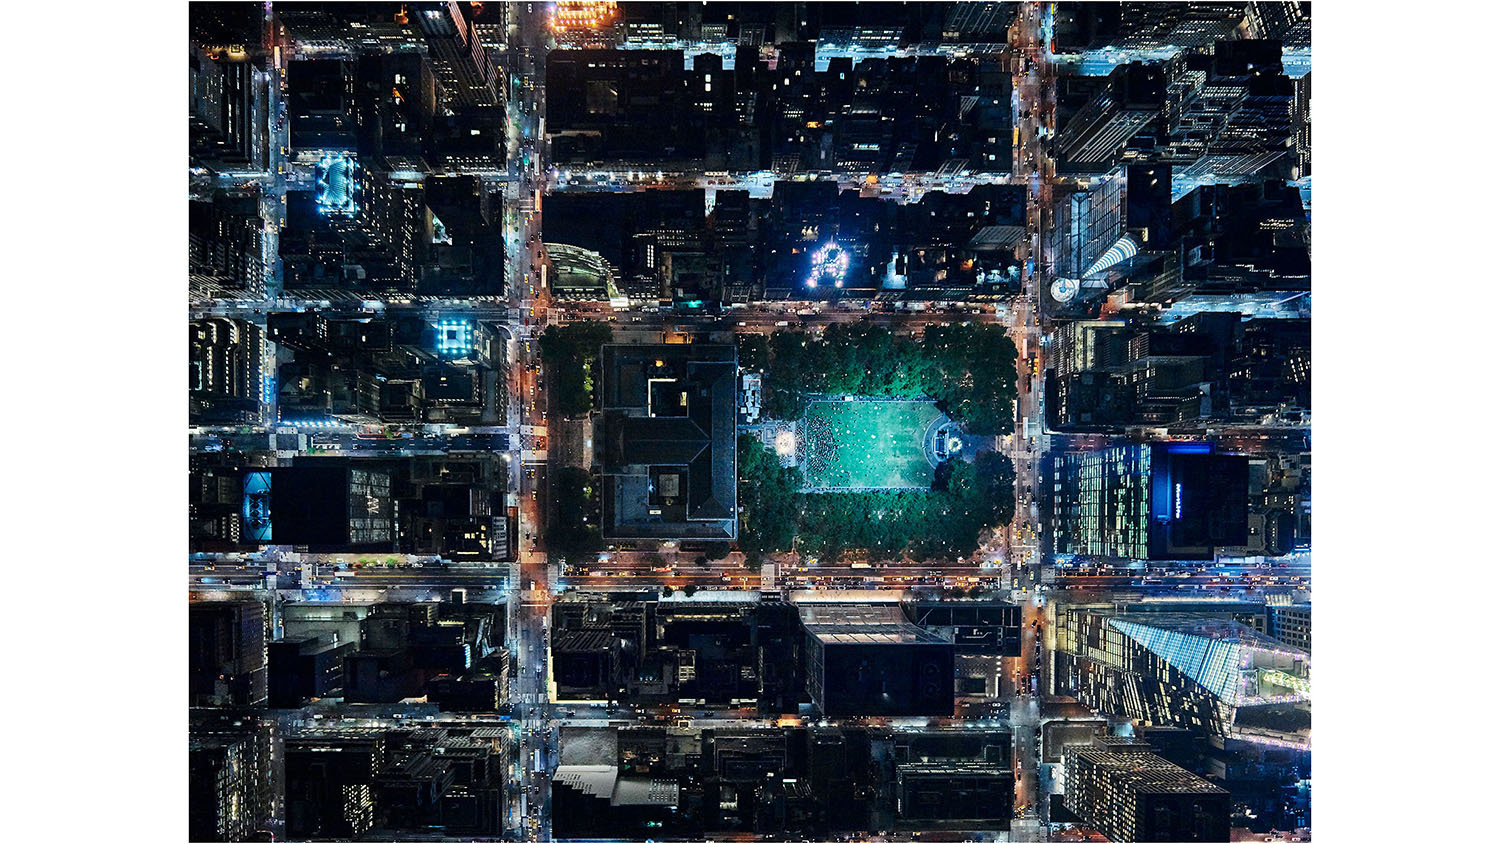 See breathtaking nighttime aerial photos of NYC